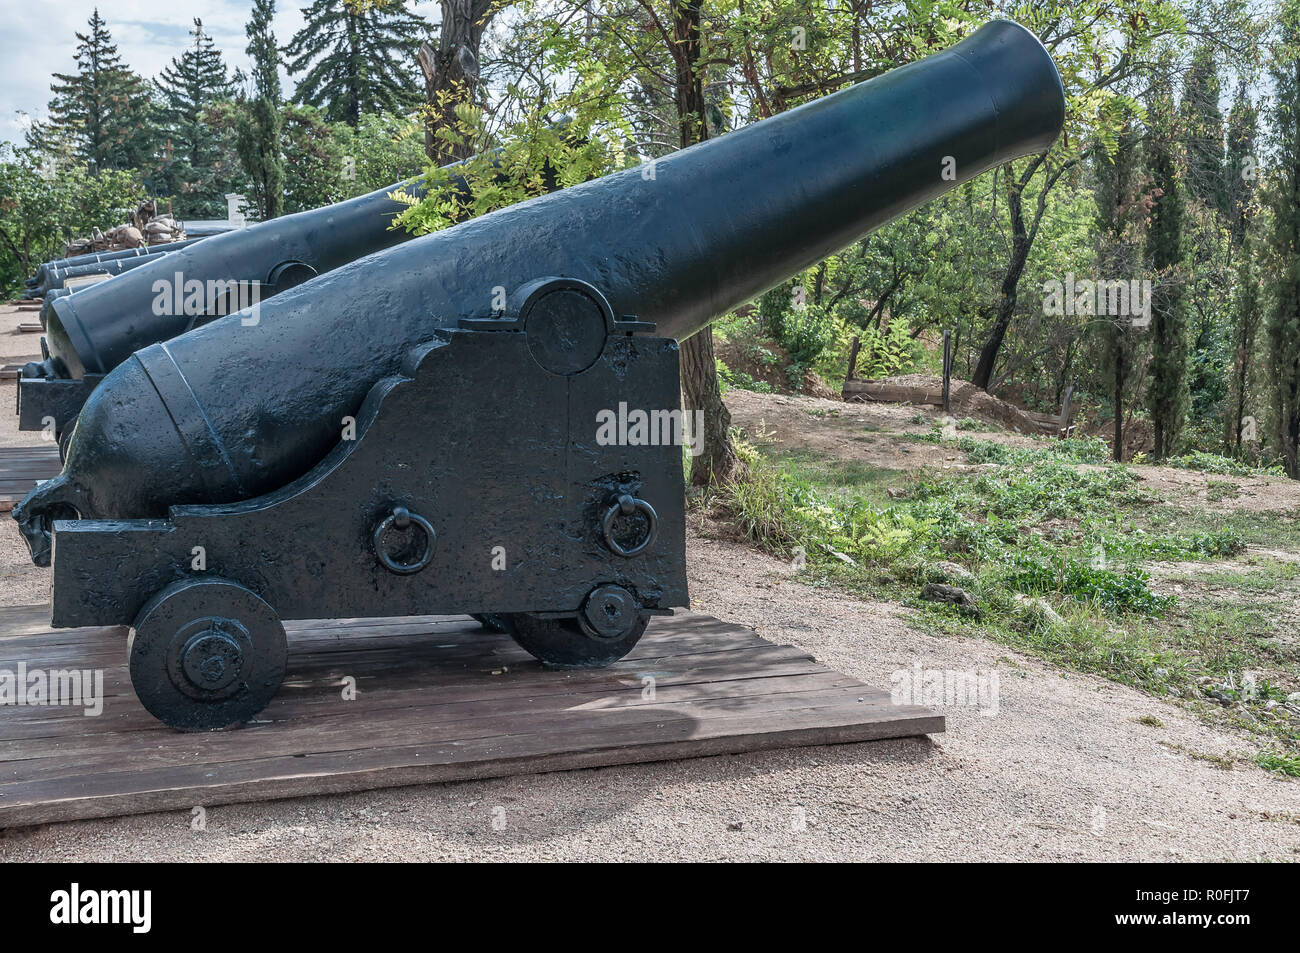 Old cannons on wooden carriages and defensive fort cores. Military - Stock Image